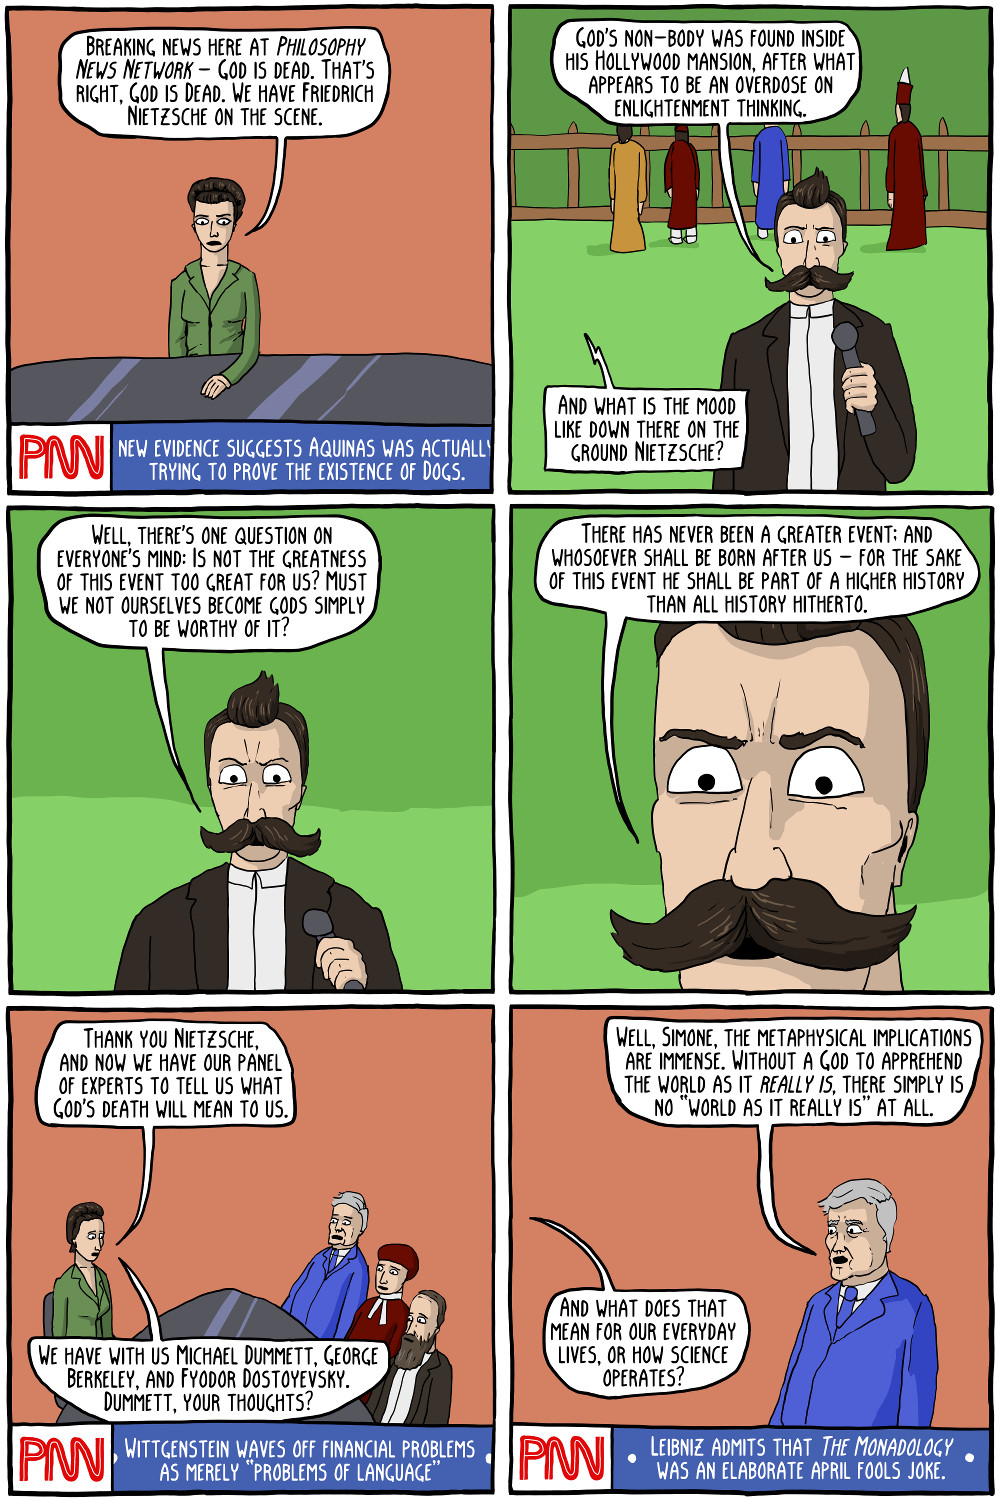 Philosophy News Network: The Death of God